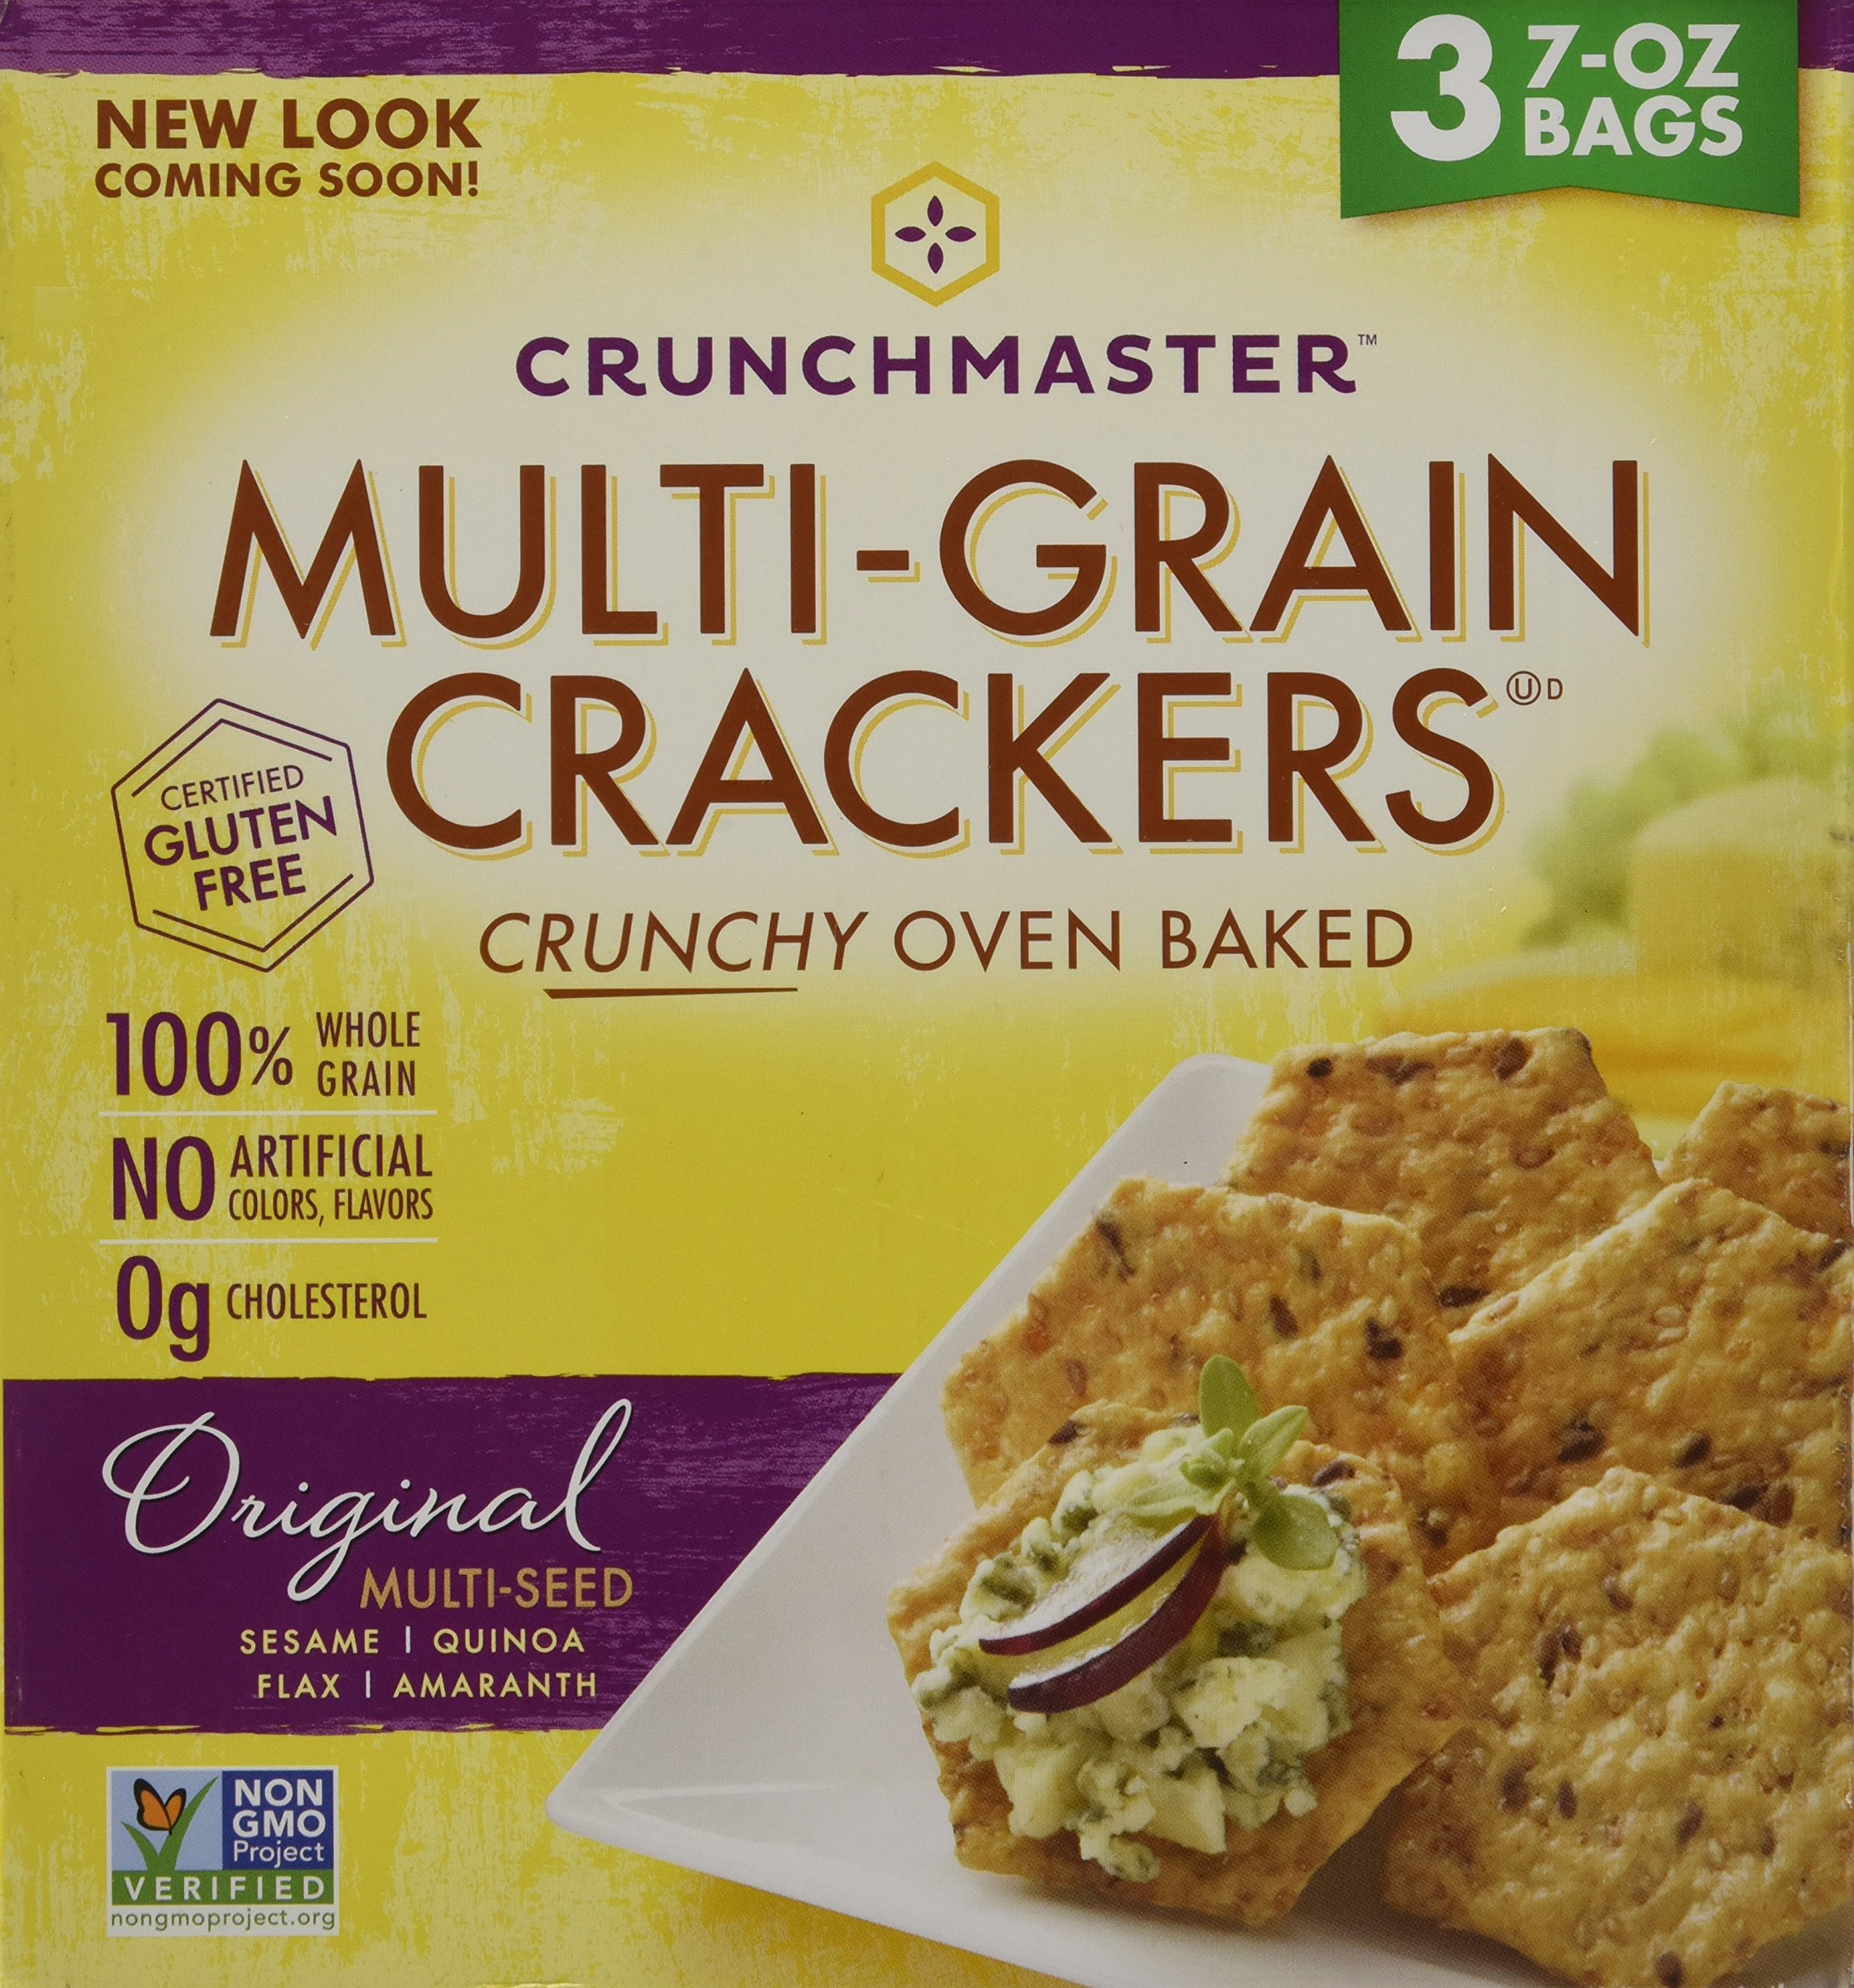 Crunchmaster Multi-Grain Crackers, 3 pk./7 oz. ( 1 BOX ) by Unknown (Image #6)